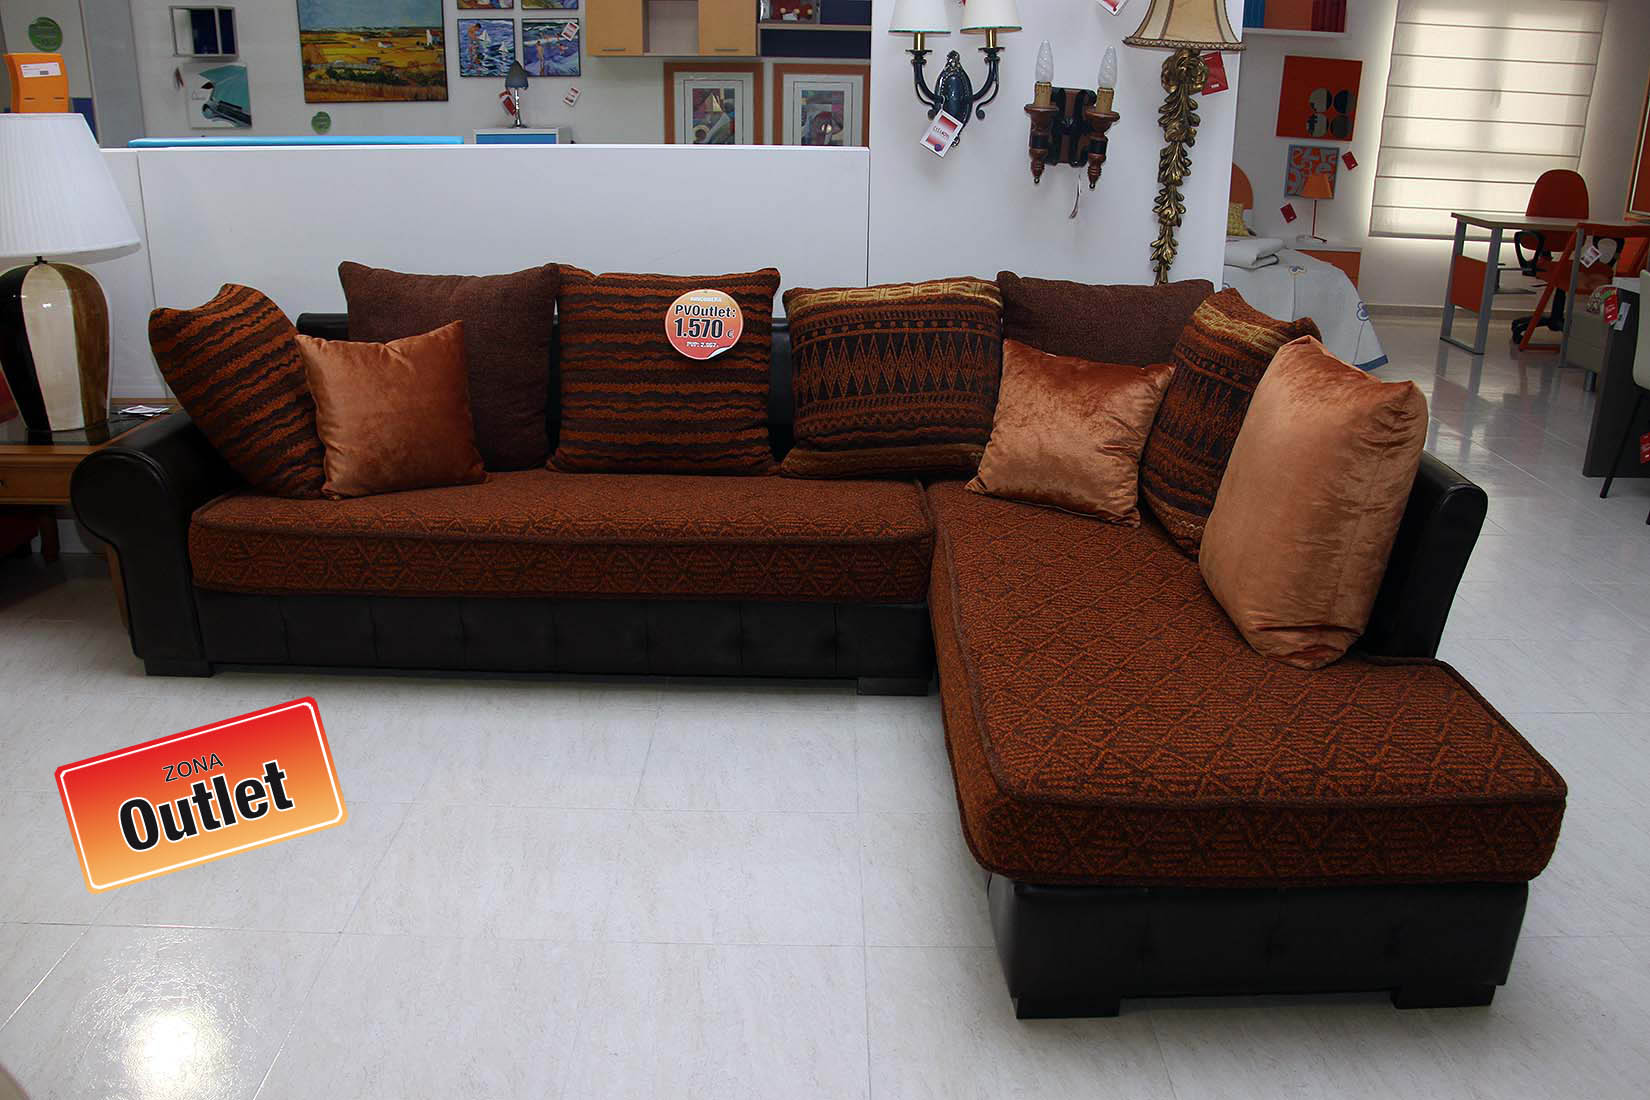 muebles y decoracion online outlet awesome descuentos